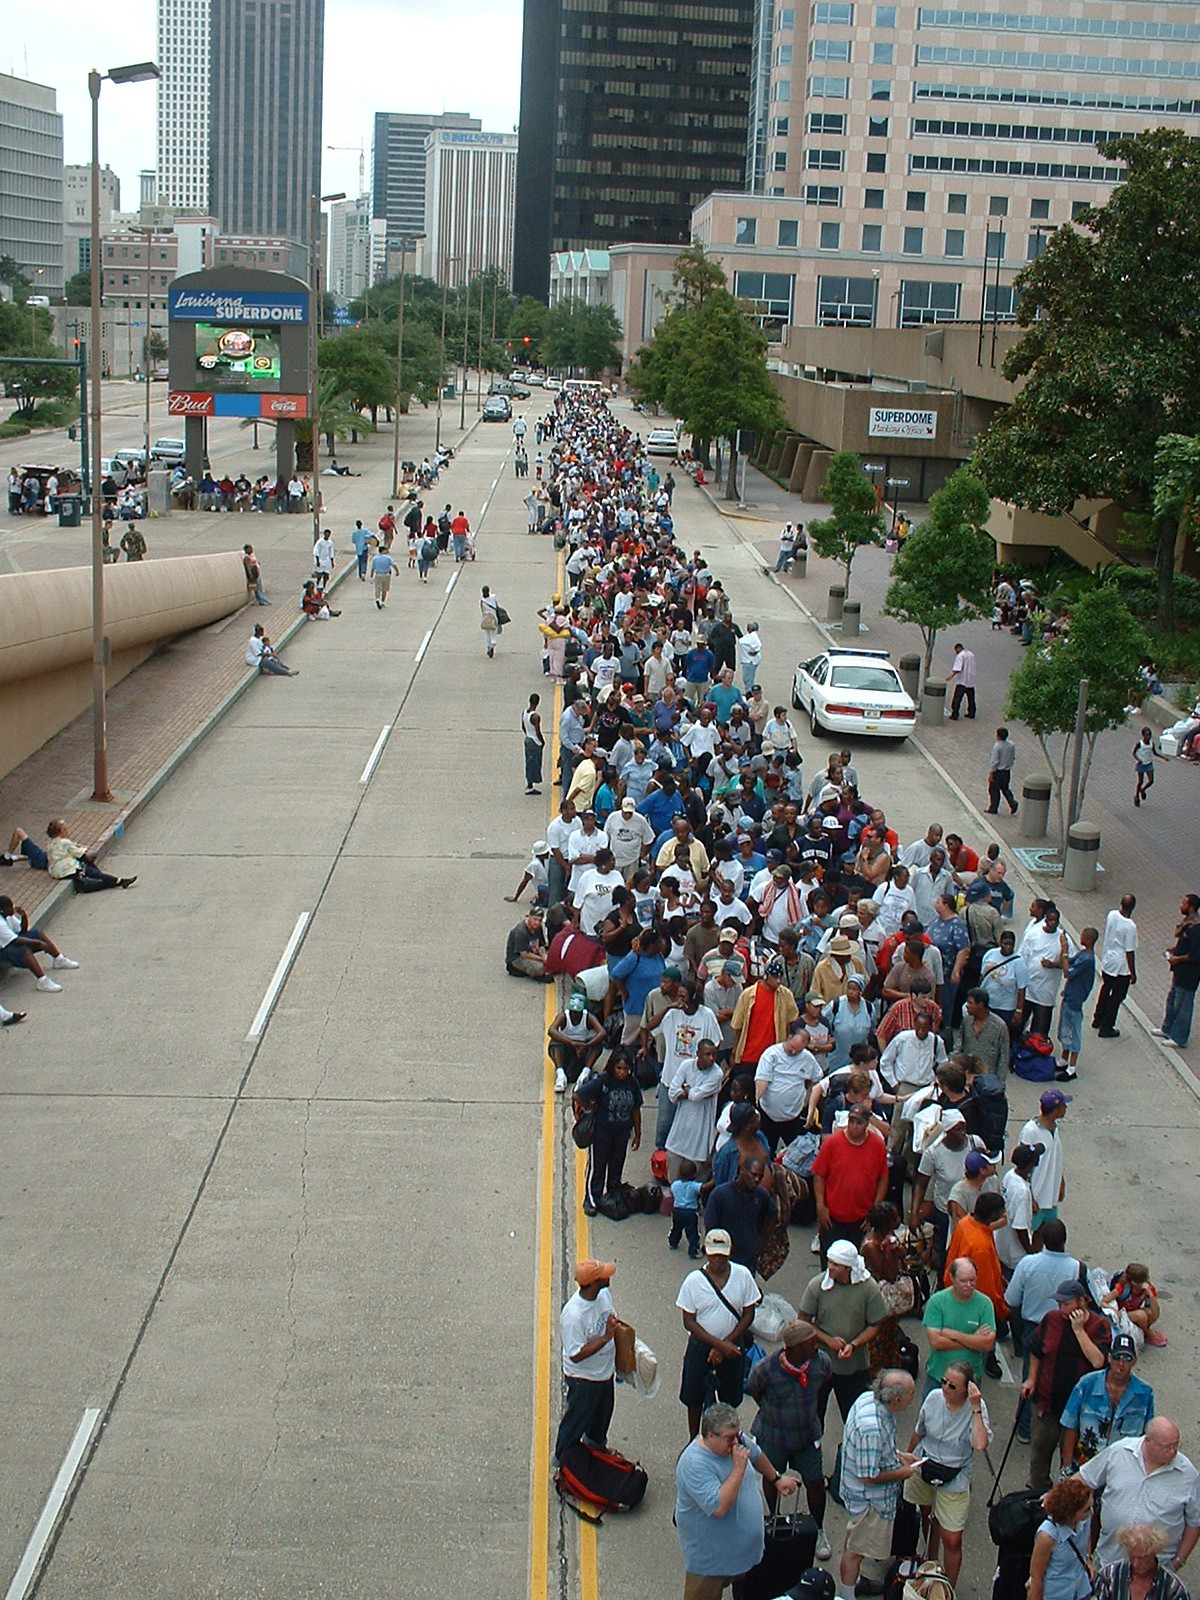 People_lining_up_for_shelter_in_Superdome_in_New_Orleans.jpg